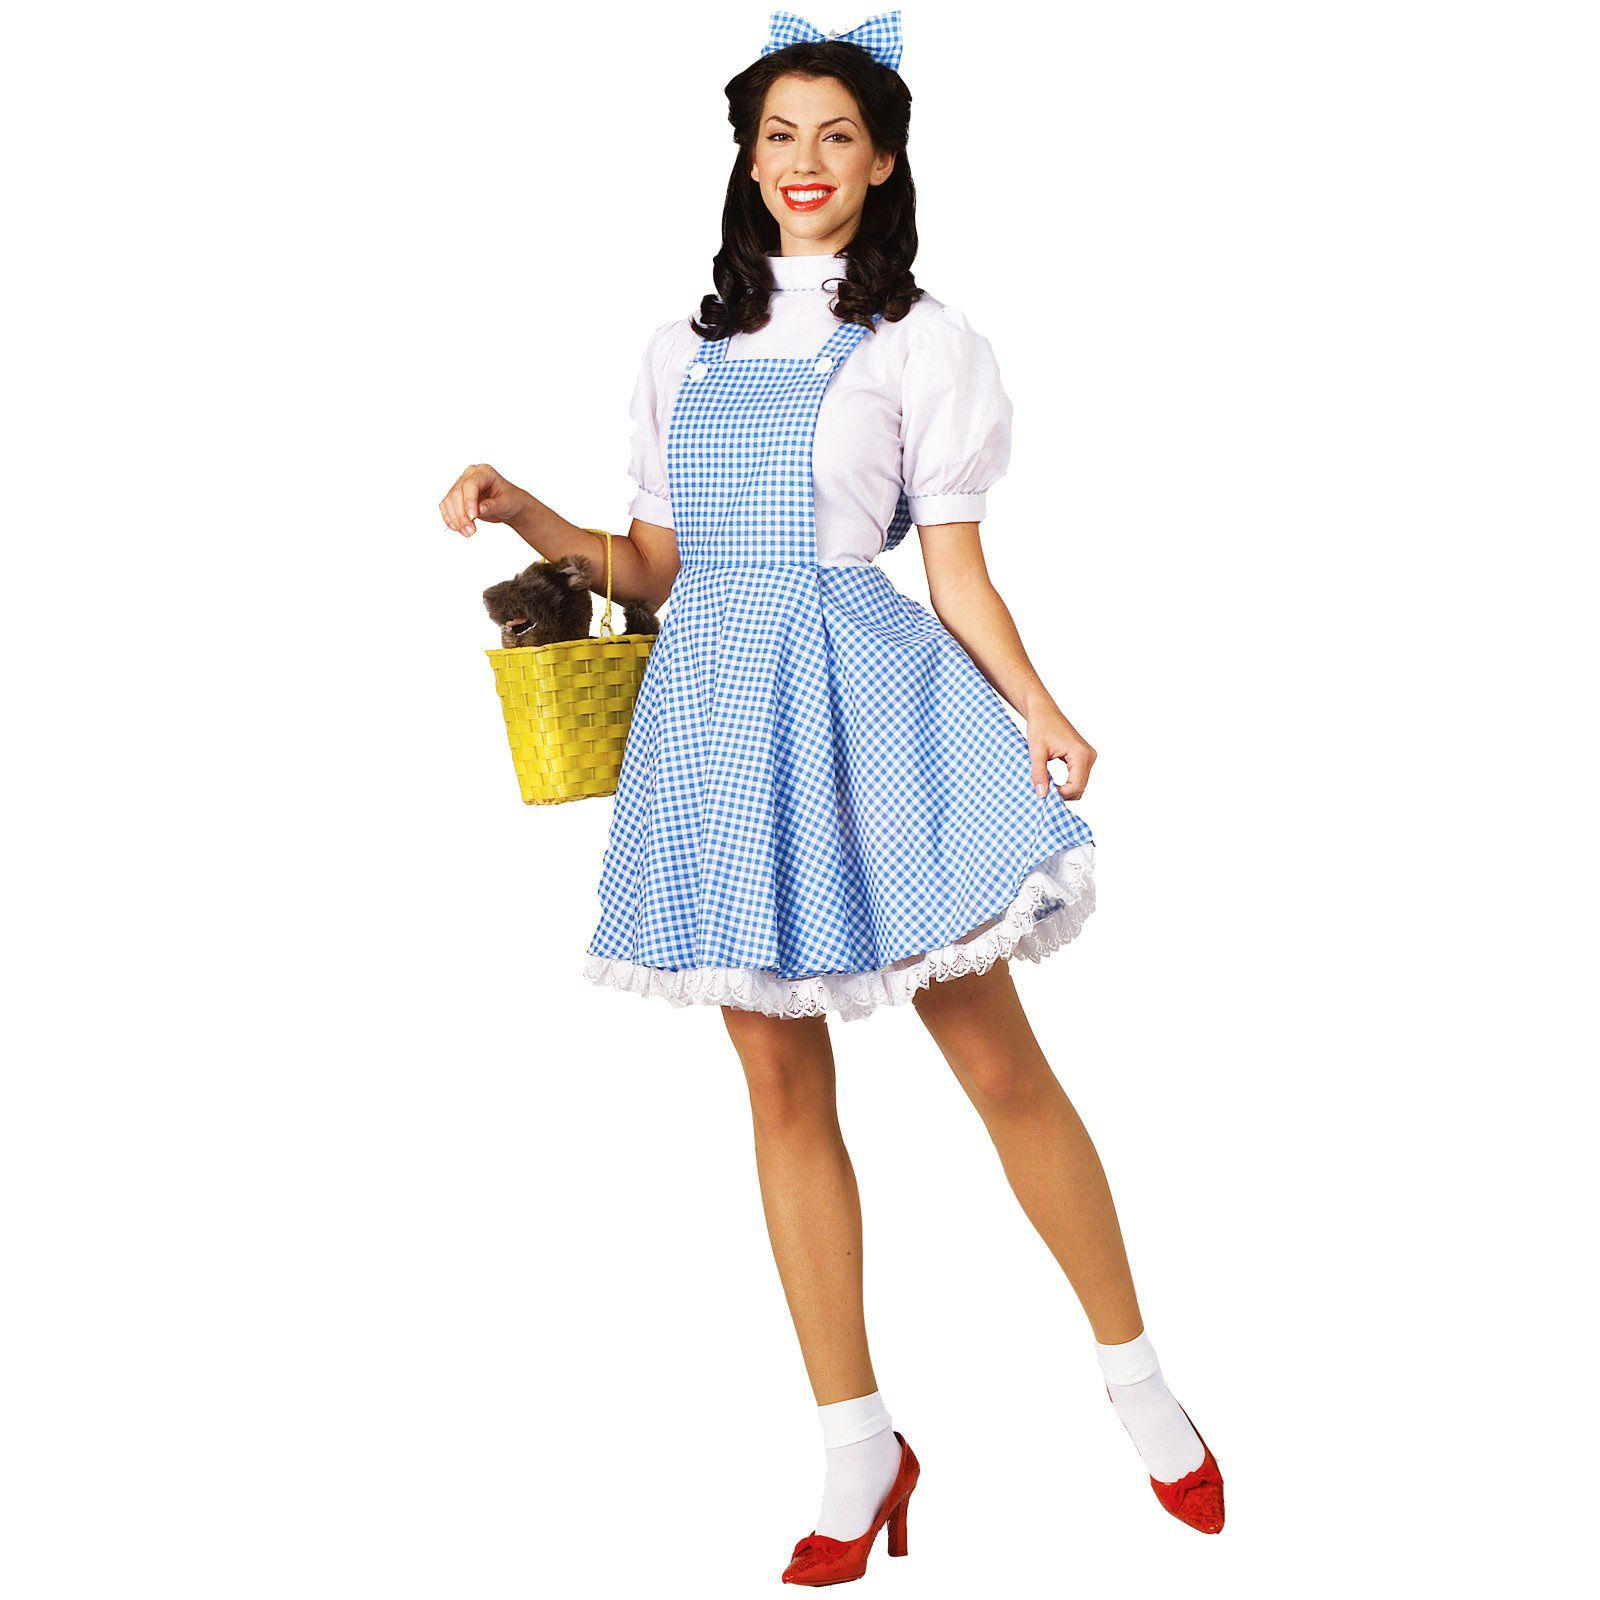 wizard of oz dorothy - Startpage Picture Search | Dorethy ...